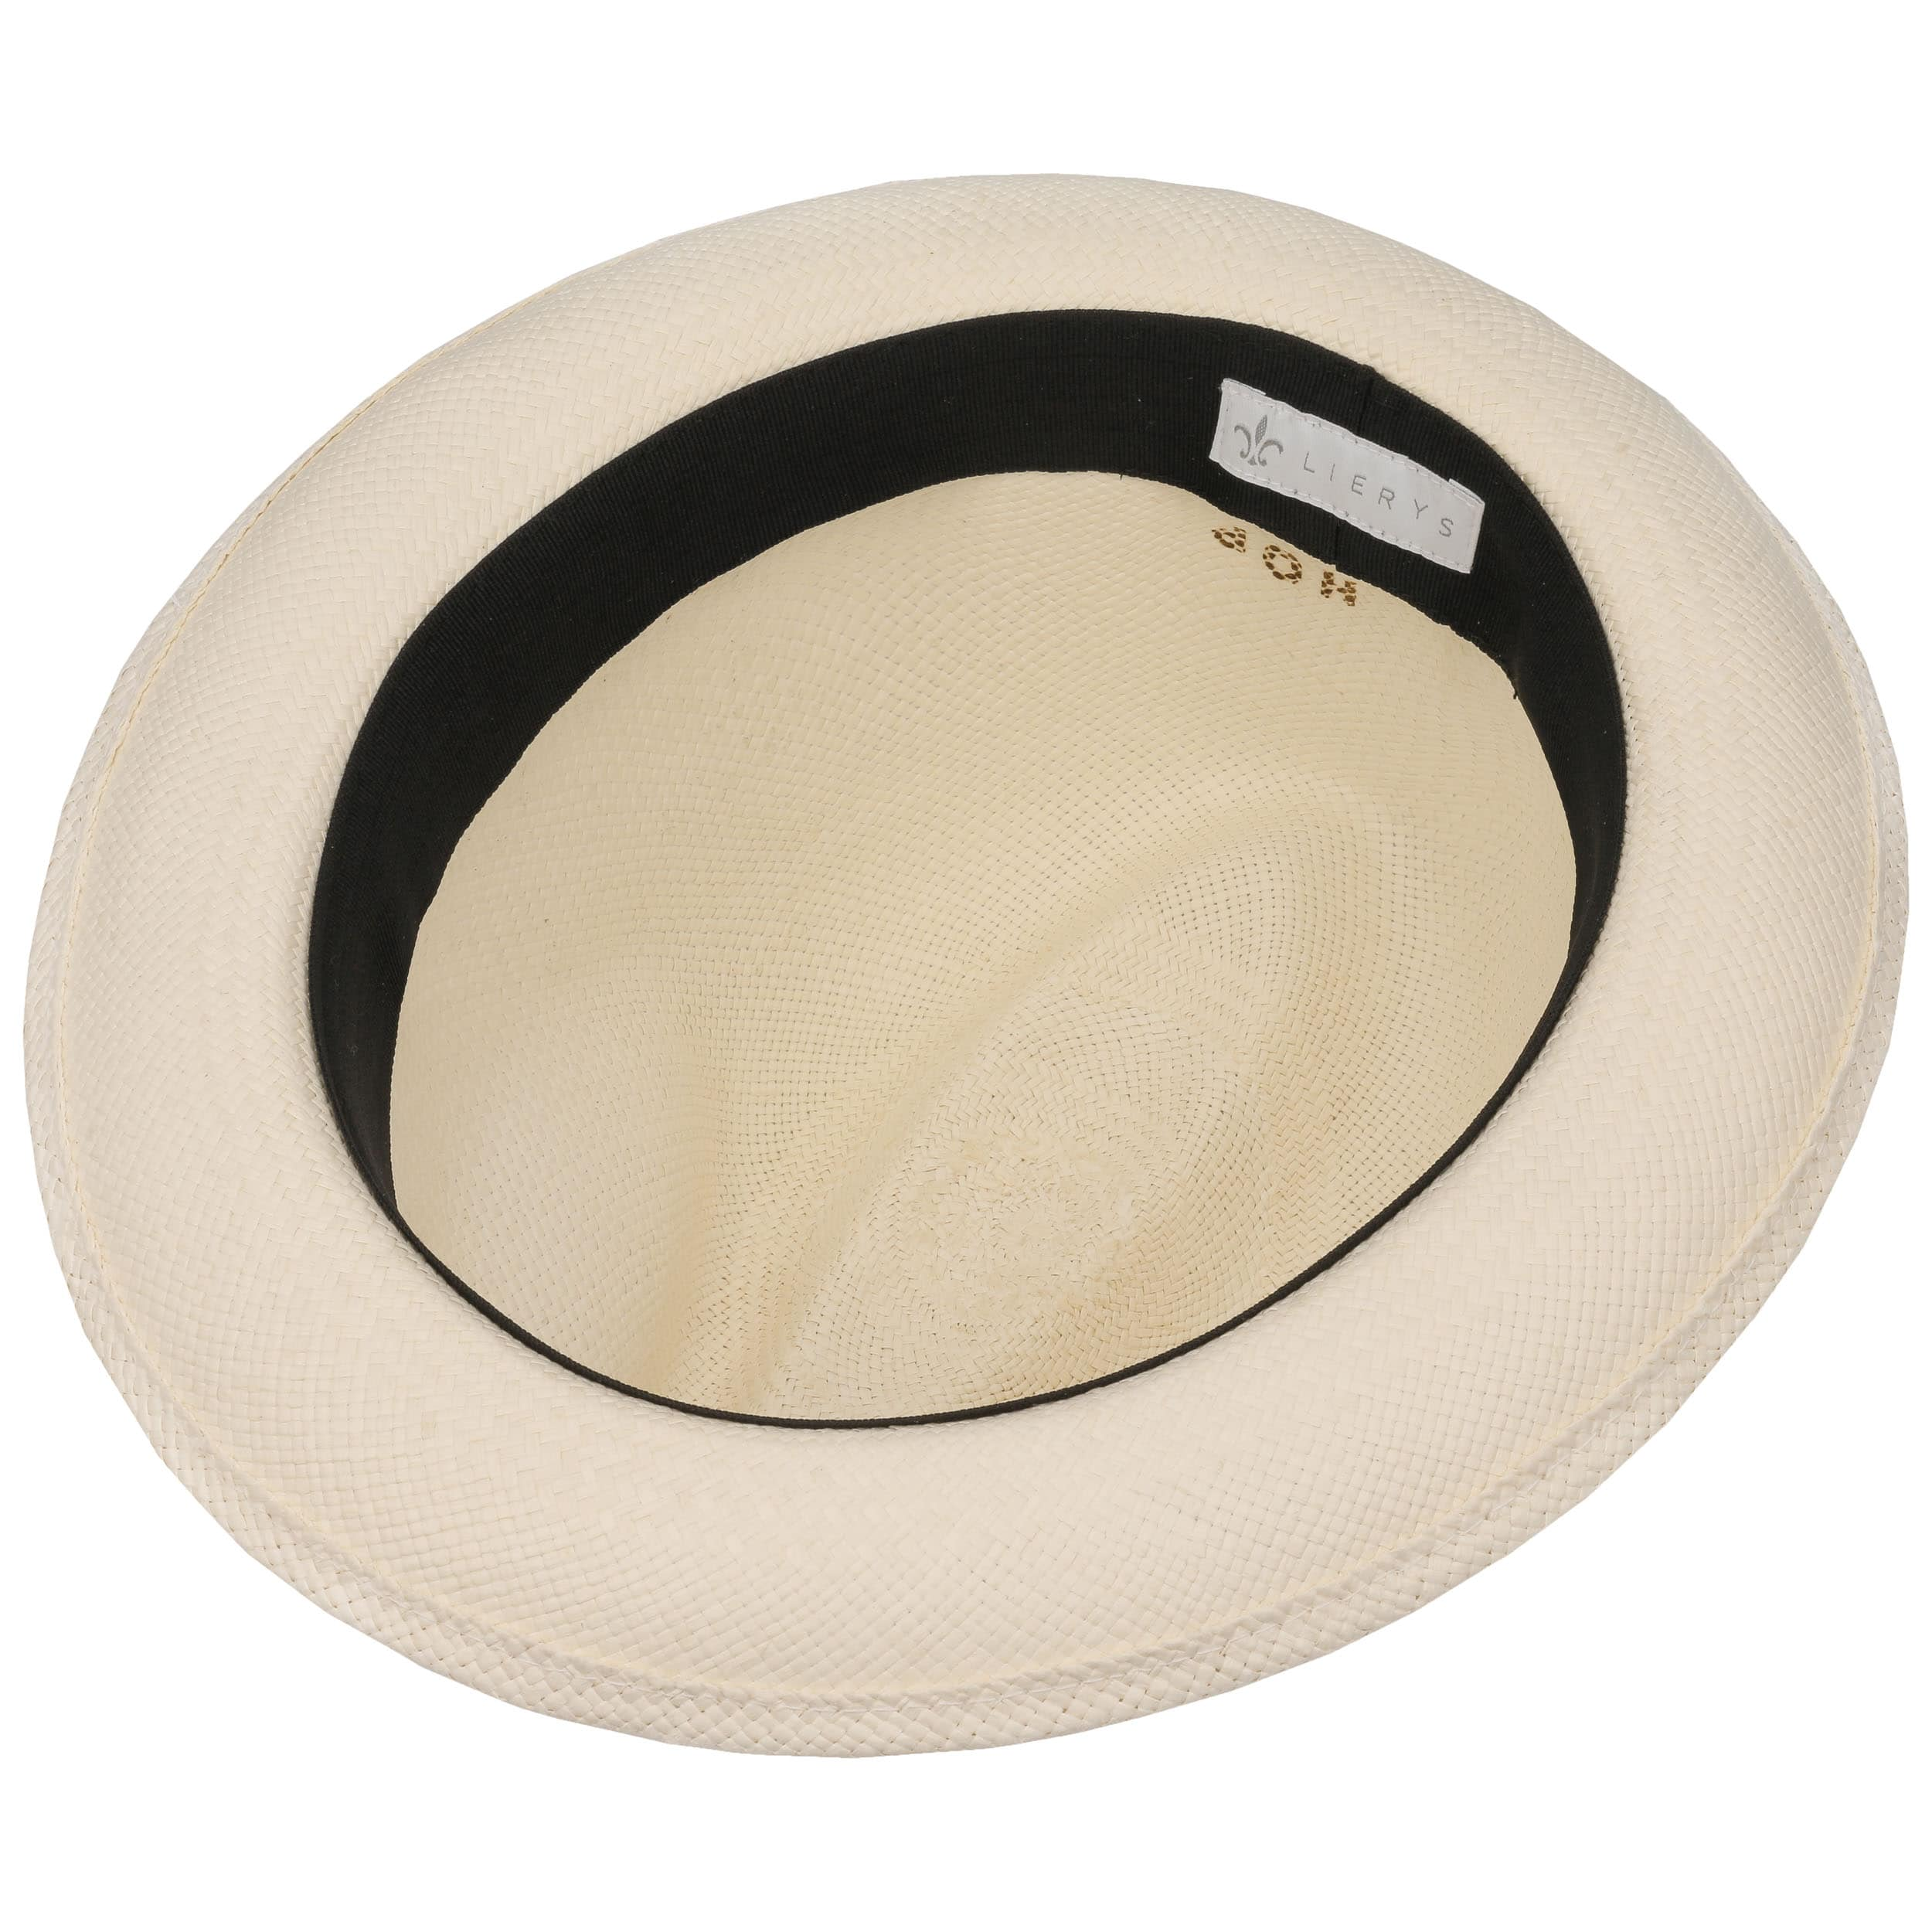 ... Eduardo Player Panama Hat by Lierys - nature 4 ... 8035736ddee8